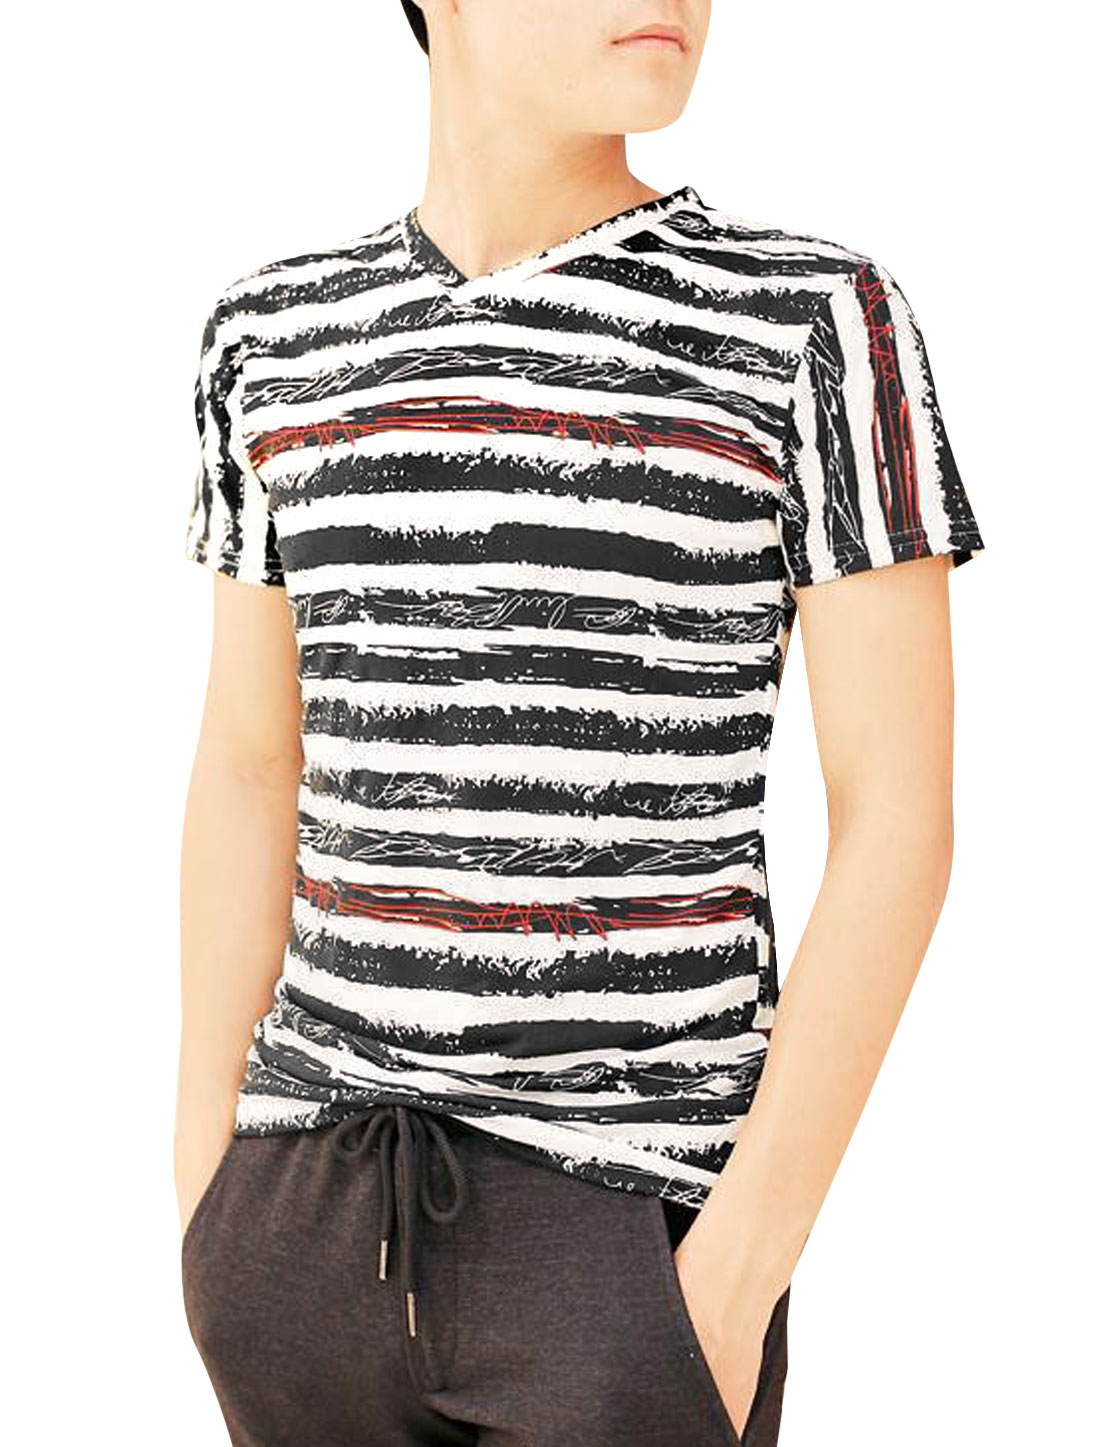 Men V Neck Short Sleeve Stripes Pattern Cozy Fit Tee Top Beige Black S